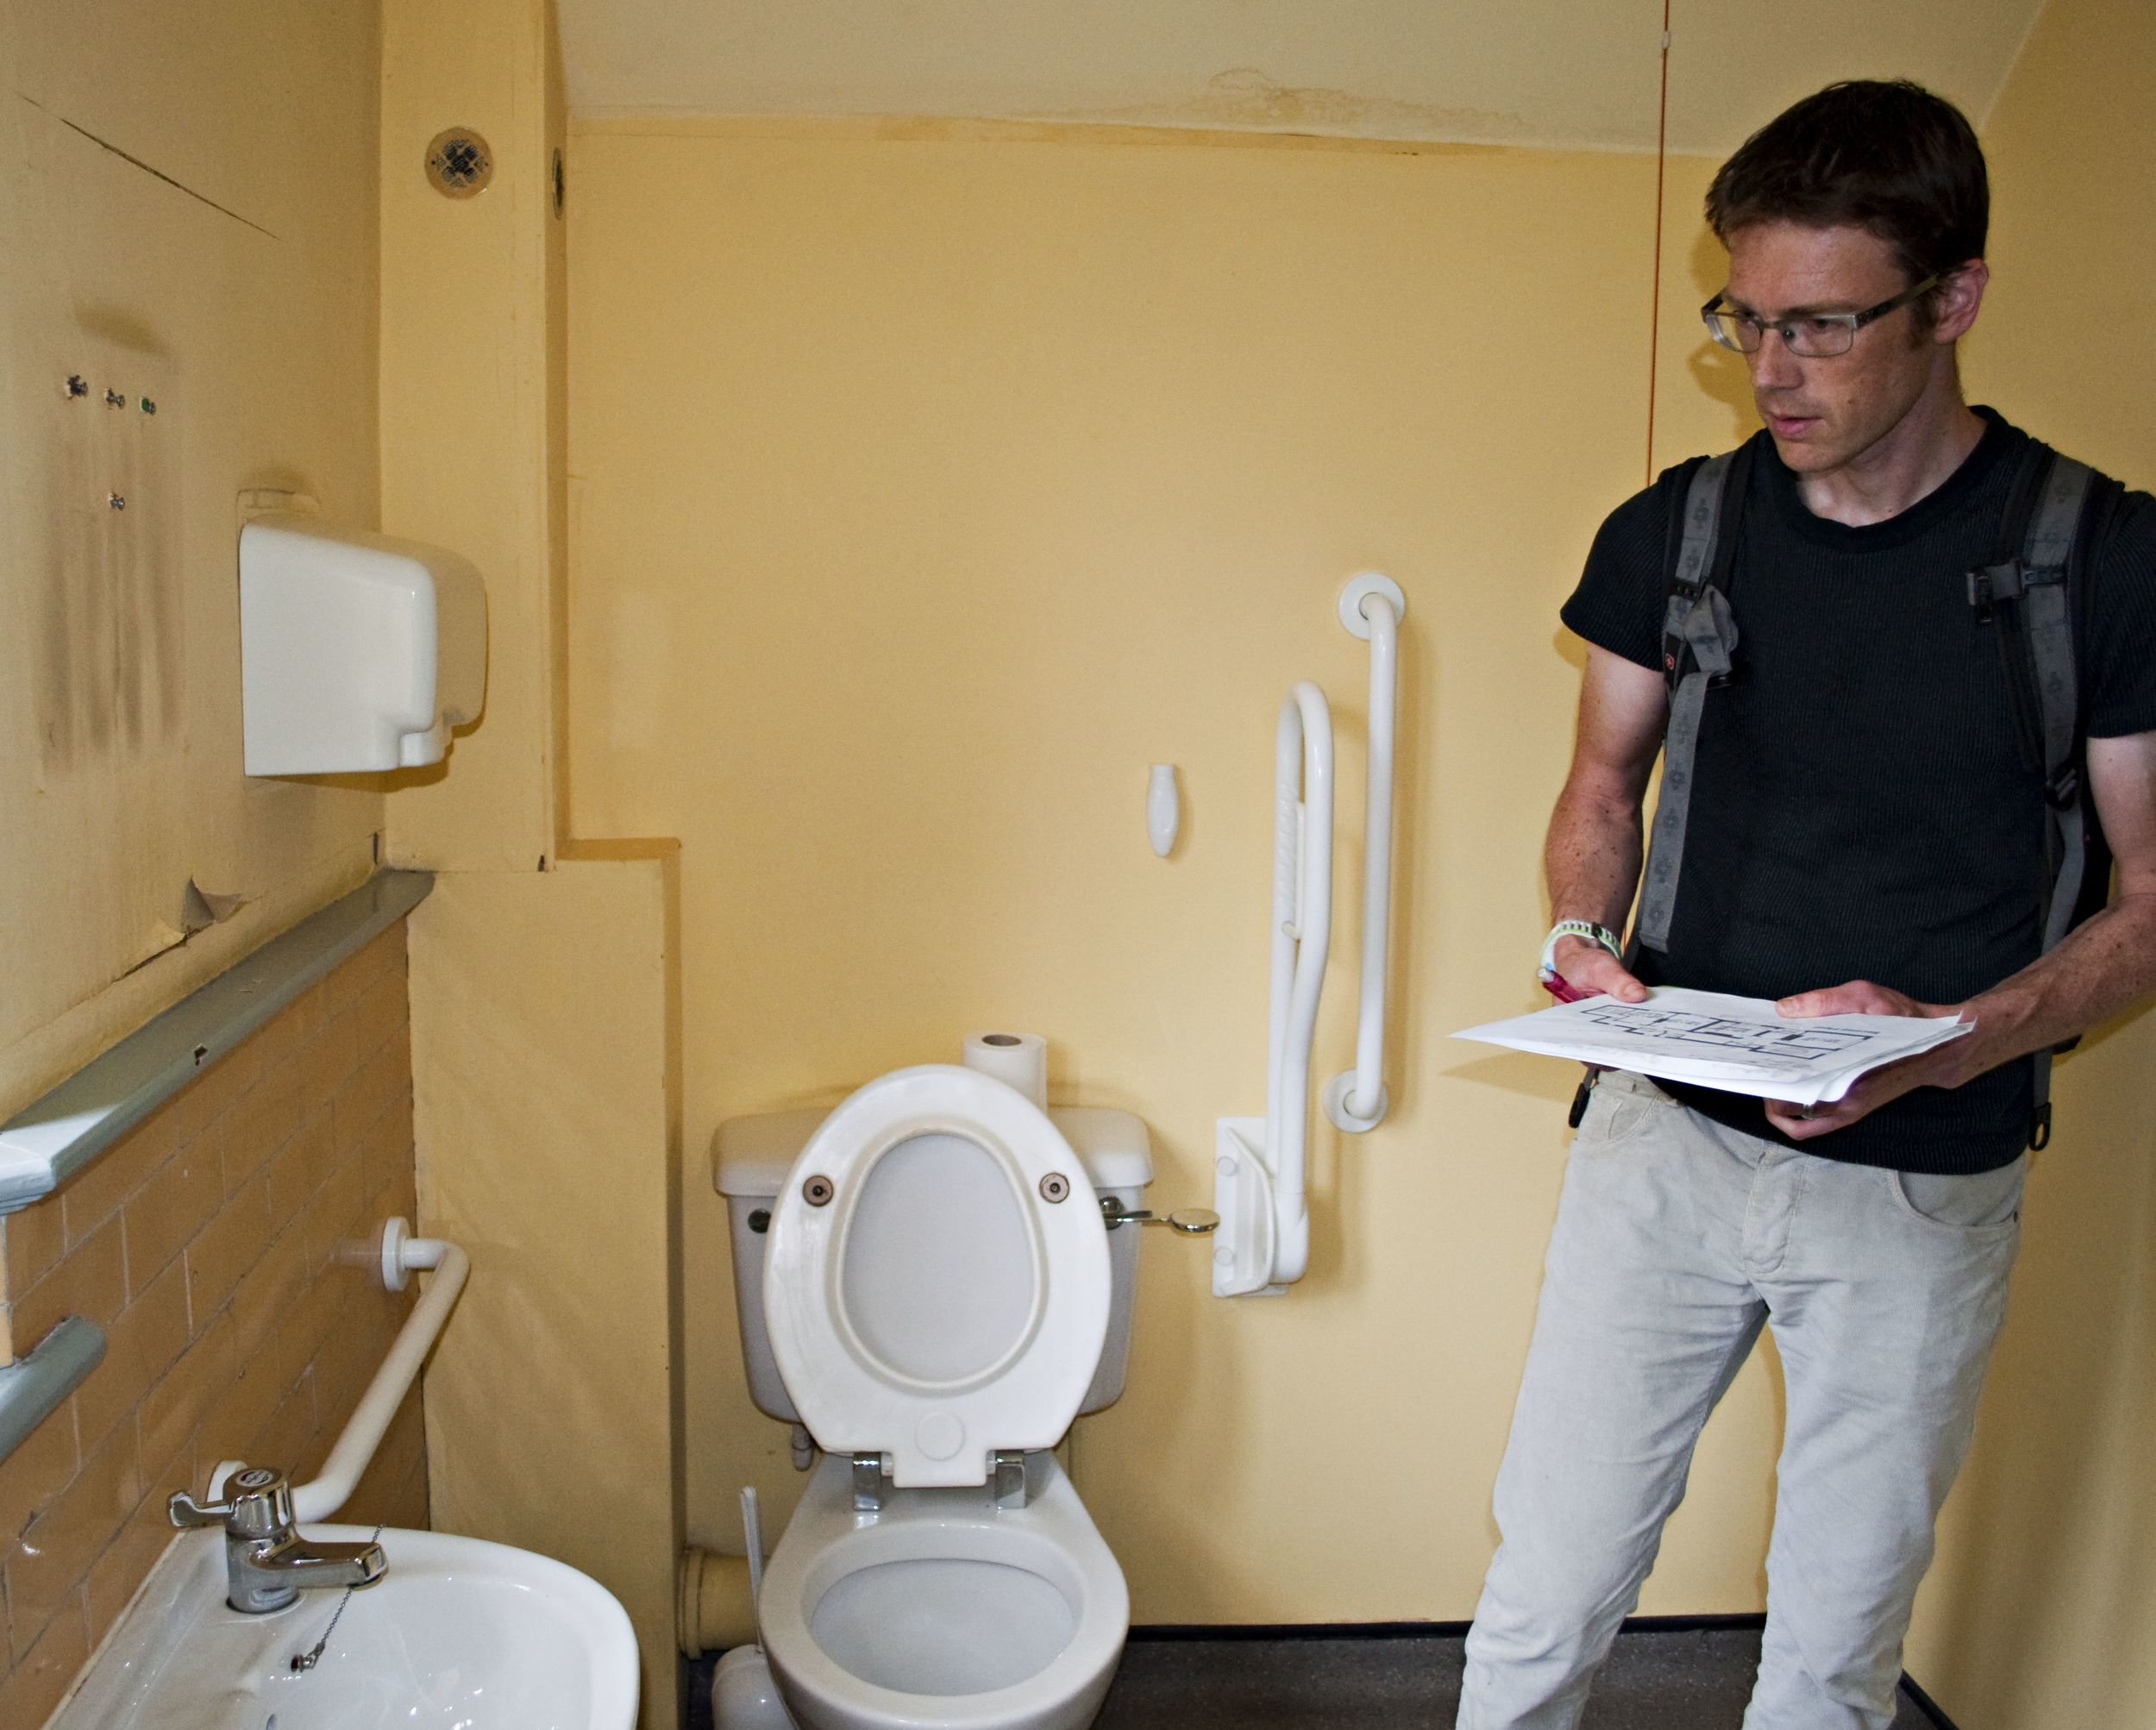 Dunc sizing up the bathroom back in September, before we bought the house.